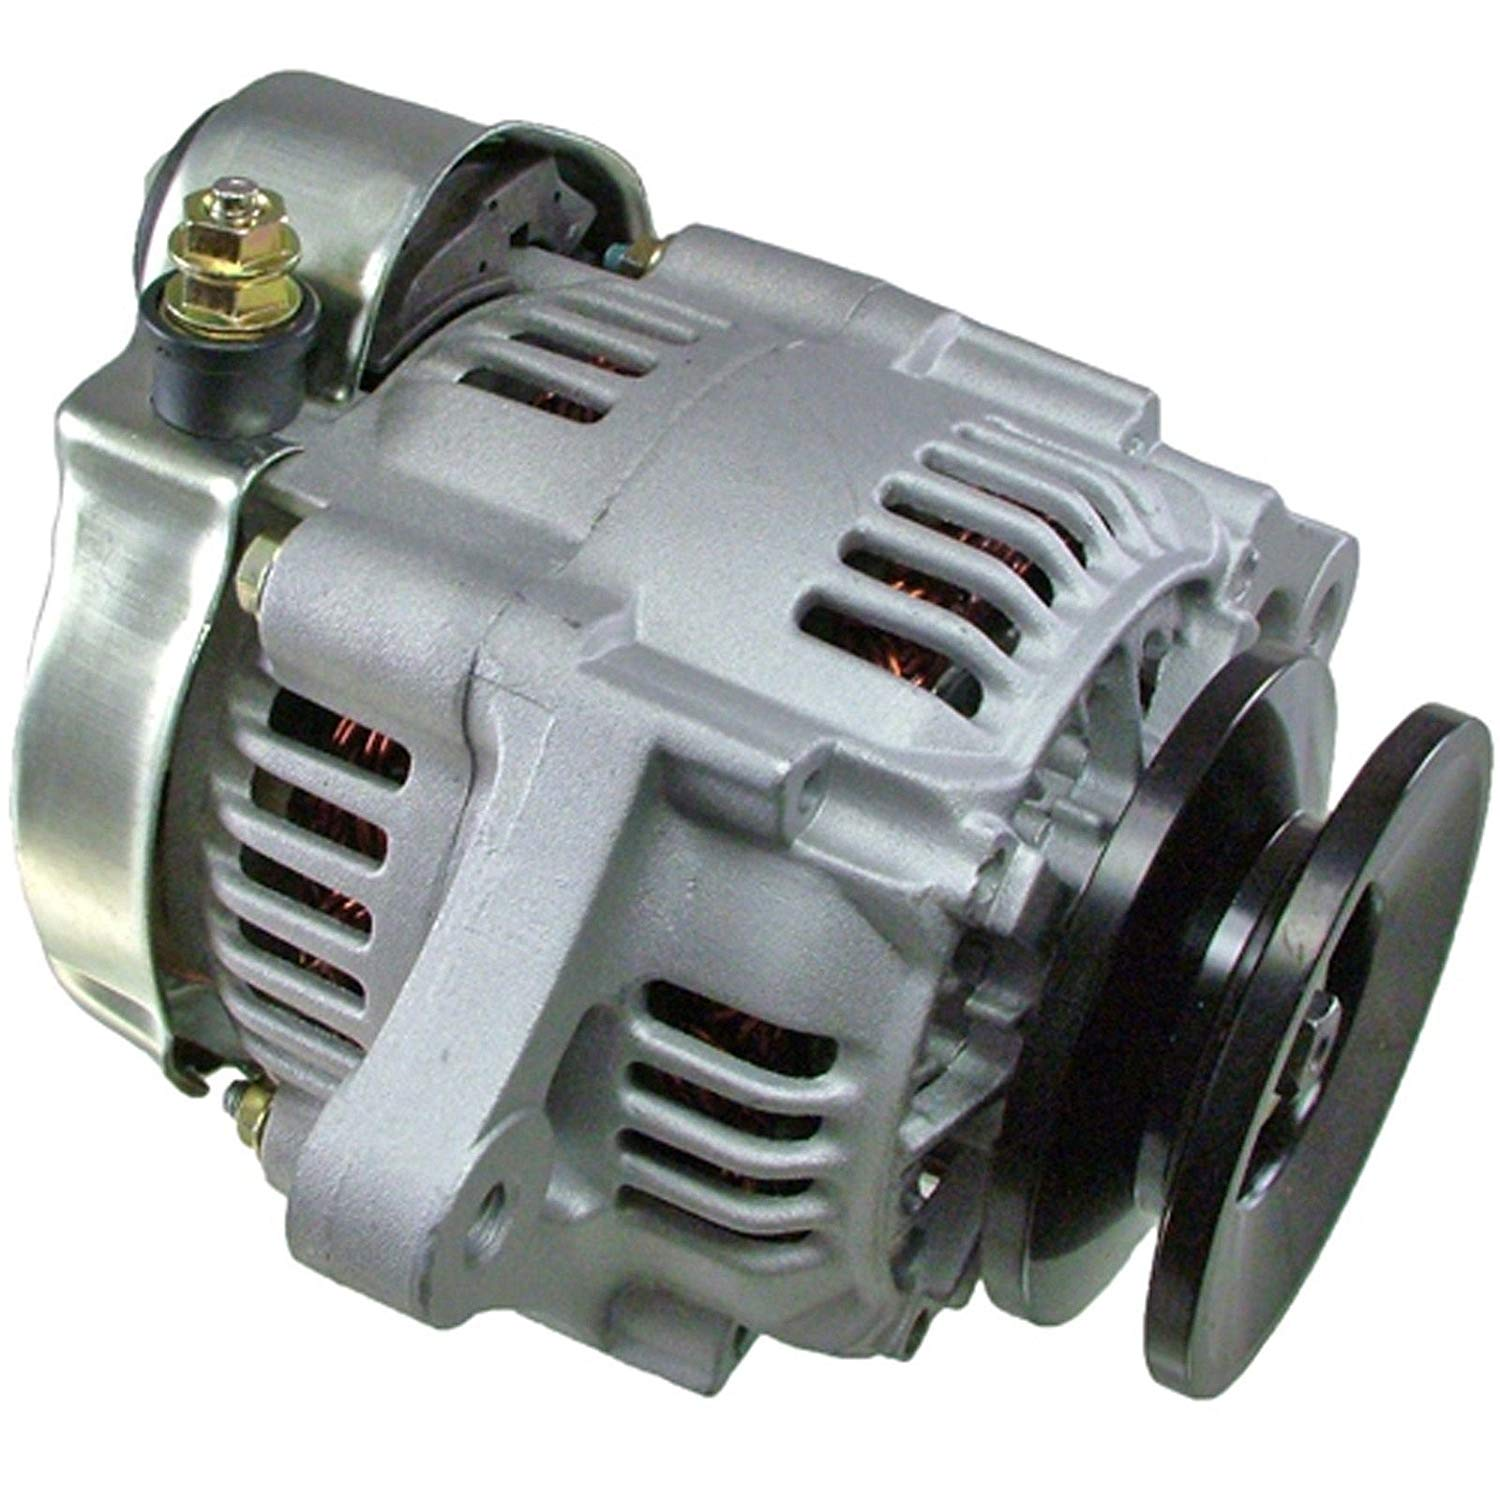 Hitachi EX55 Excavator Alternator 12187N 1002114540 27060-78003 12V 35A